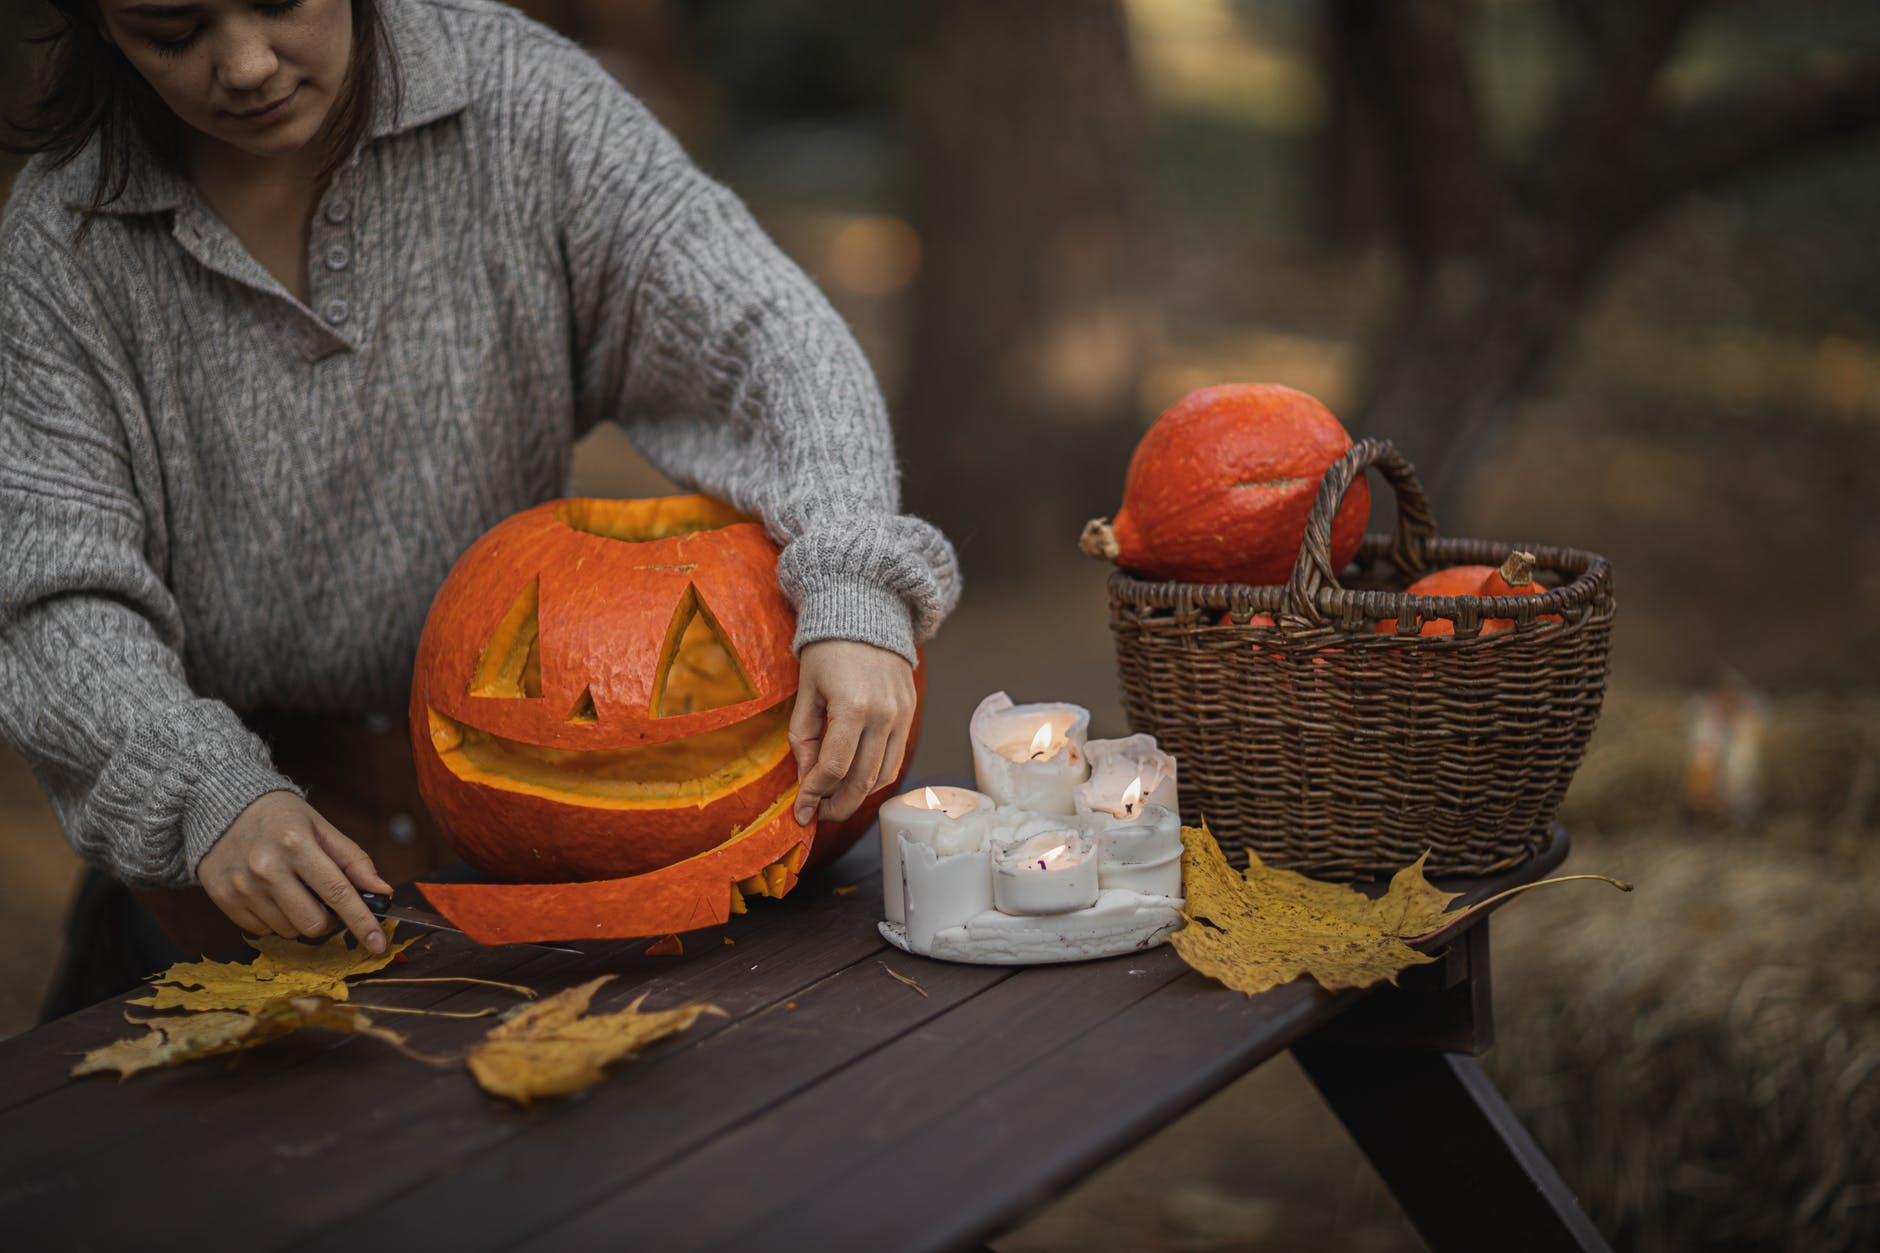 pumpkin on brown wooden table